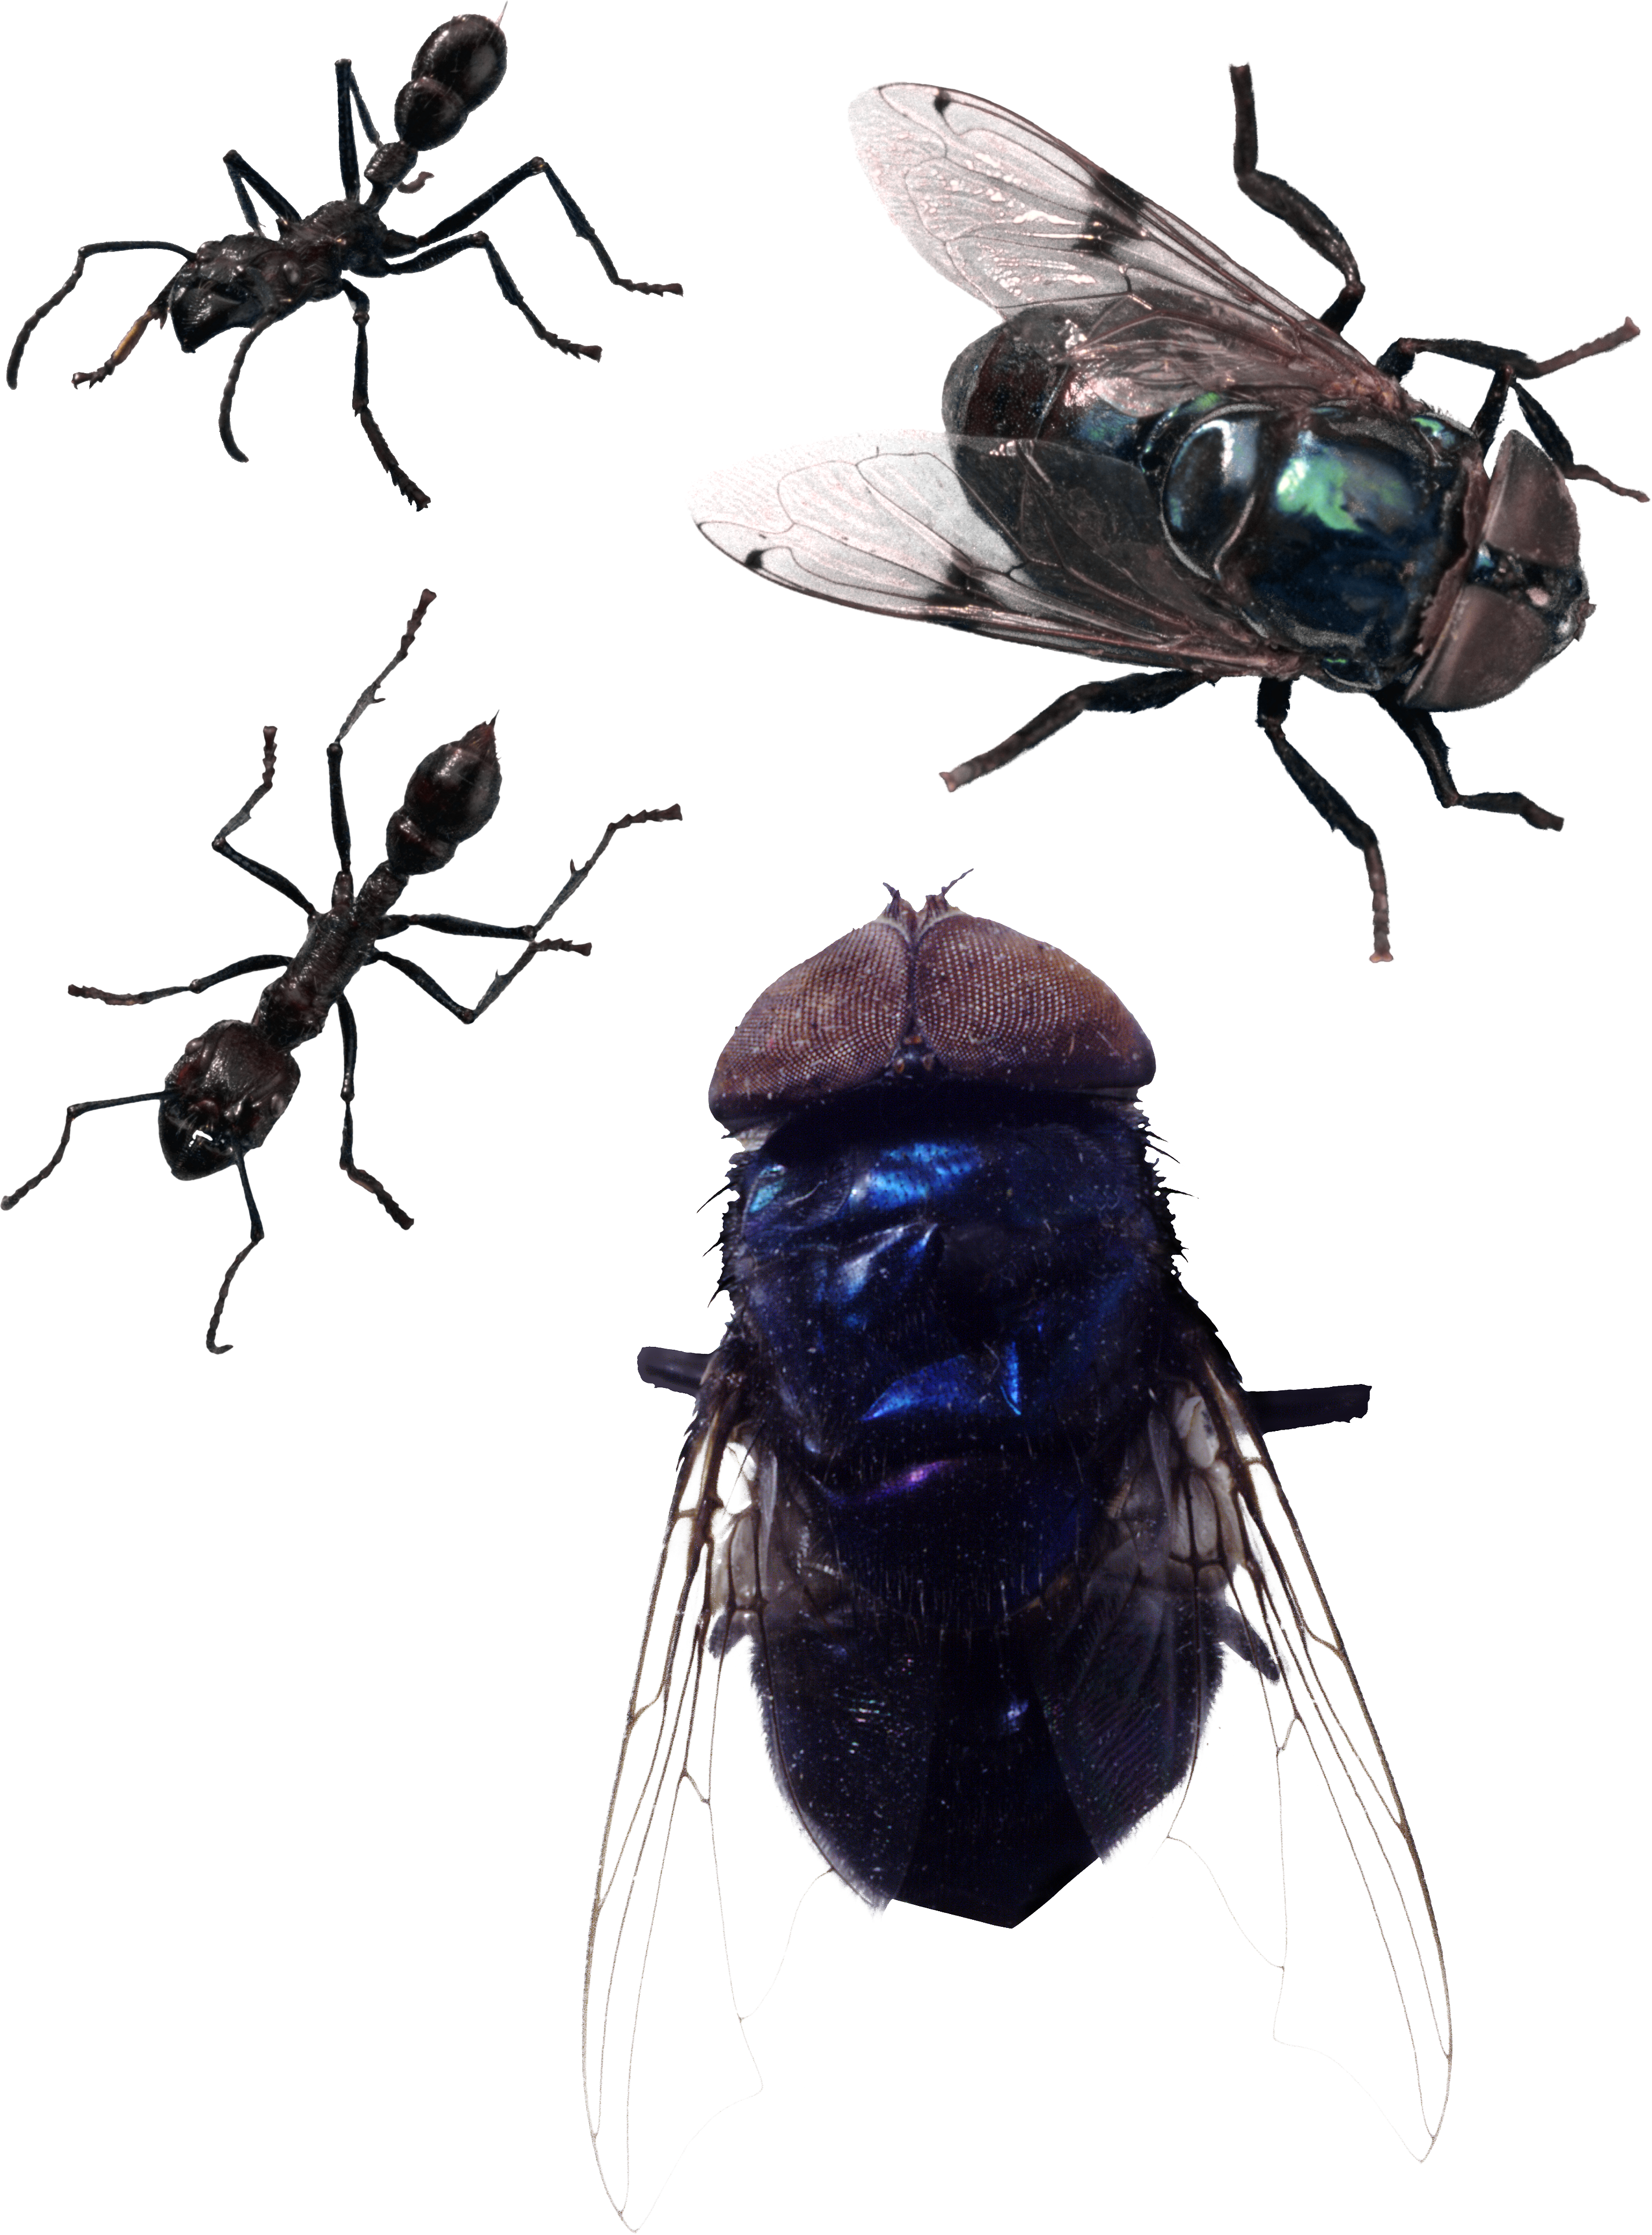 Png image free download. Fly clipart fruit fly